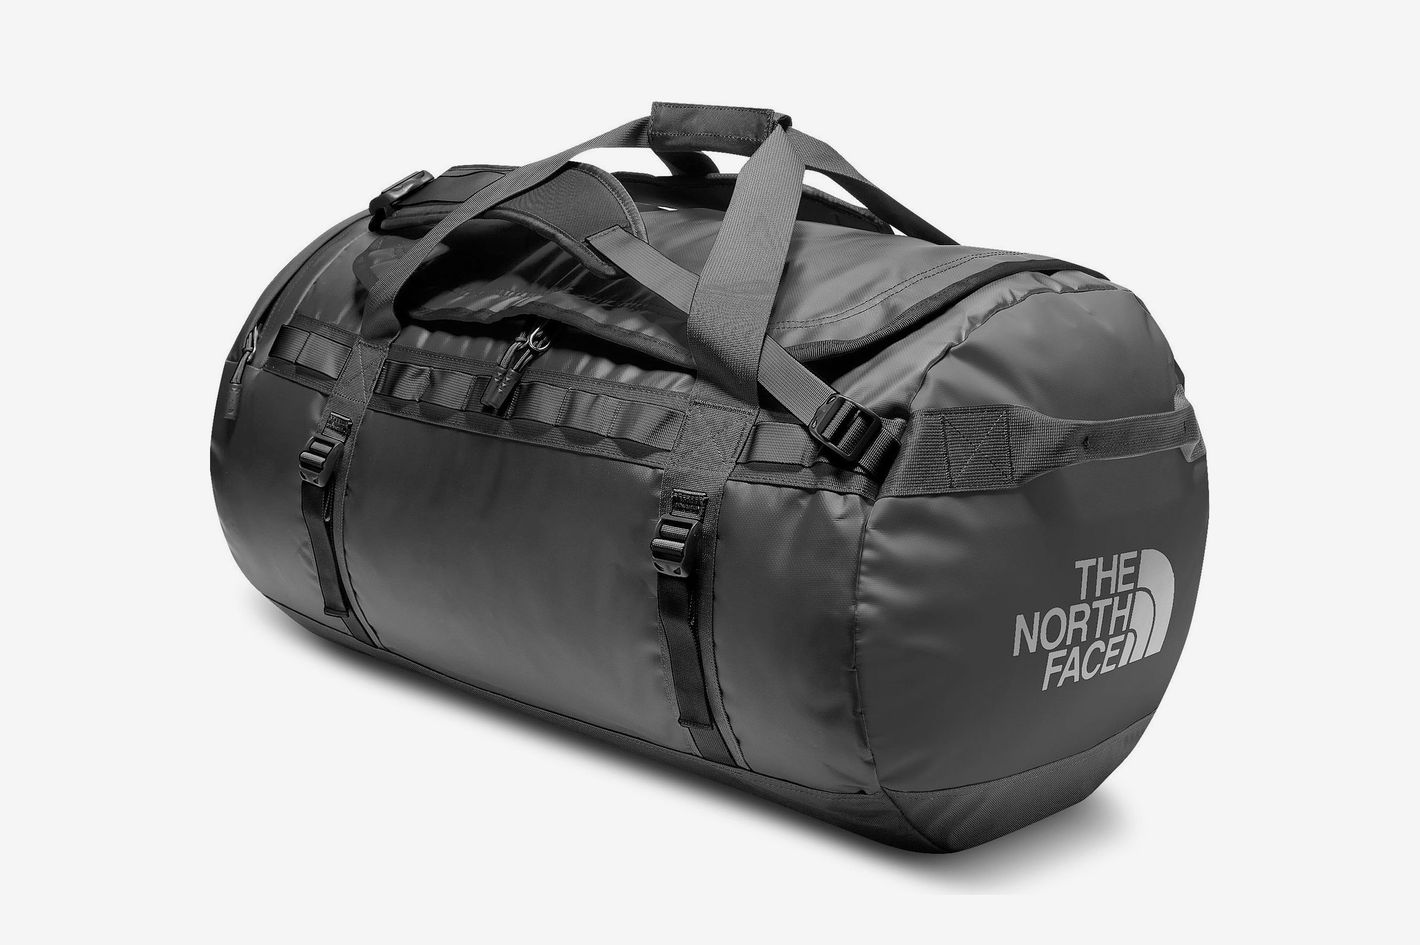 b1445ab33db201 The North Face Base Camp Large Duffel Bag